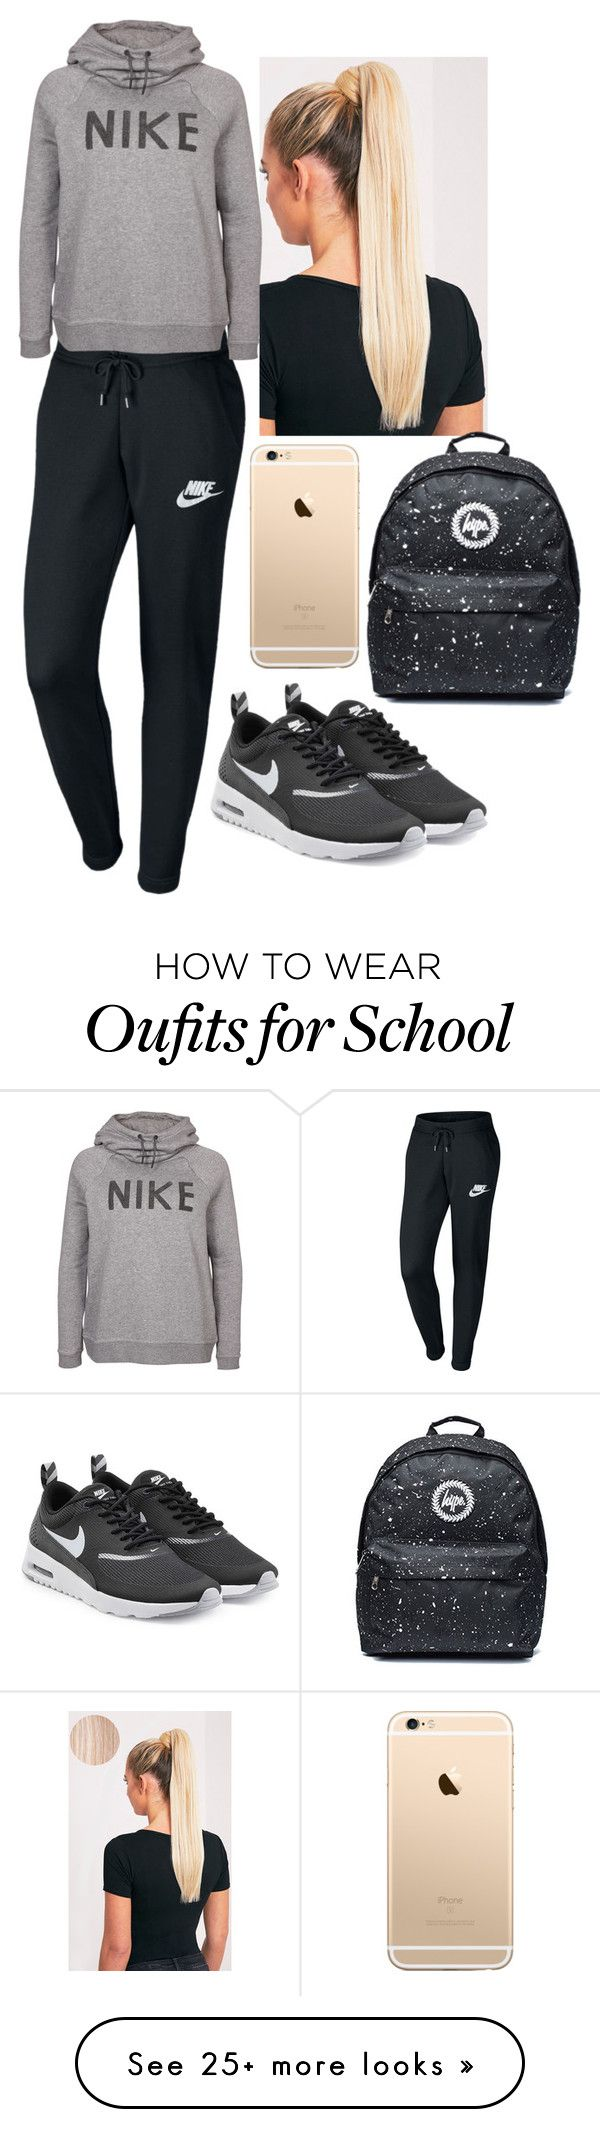 """""""Comfy school ootd"""" by tessajeane on Polyvore featuring NIKE"""